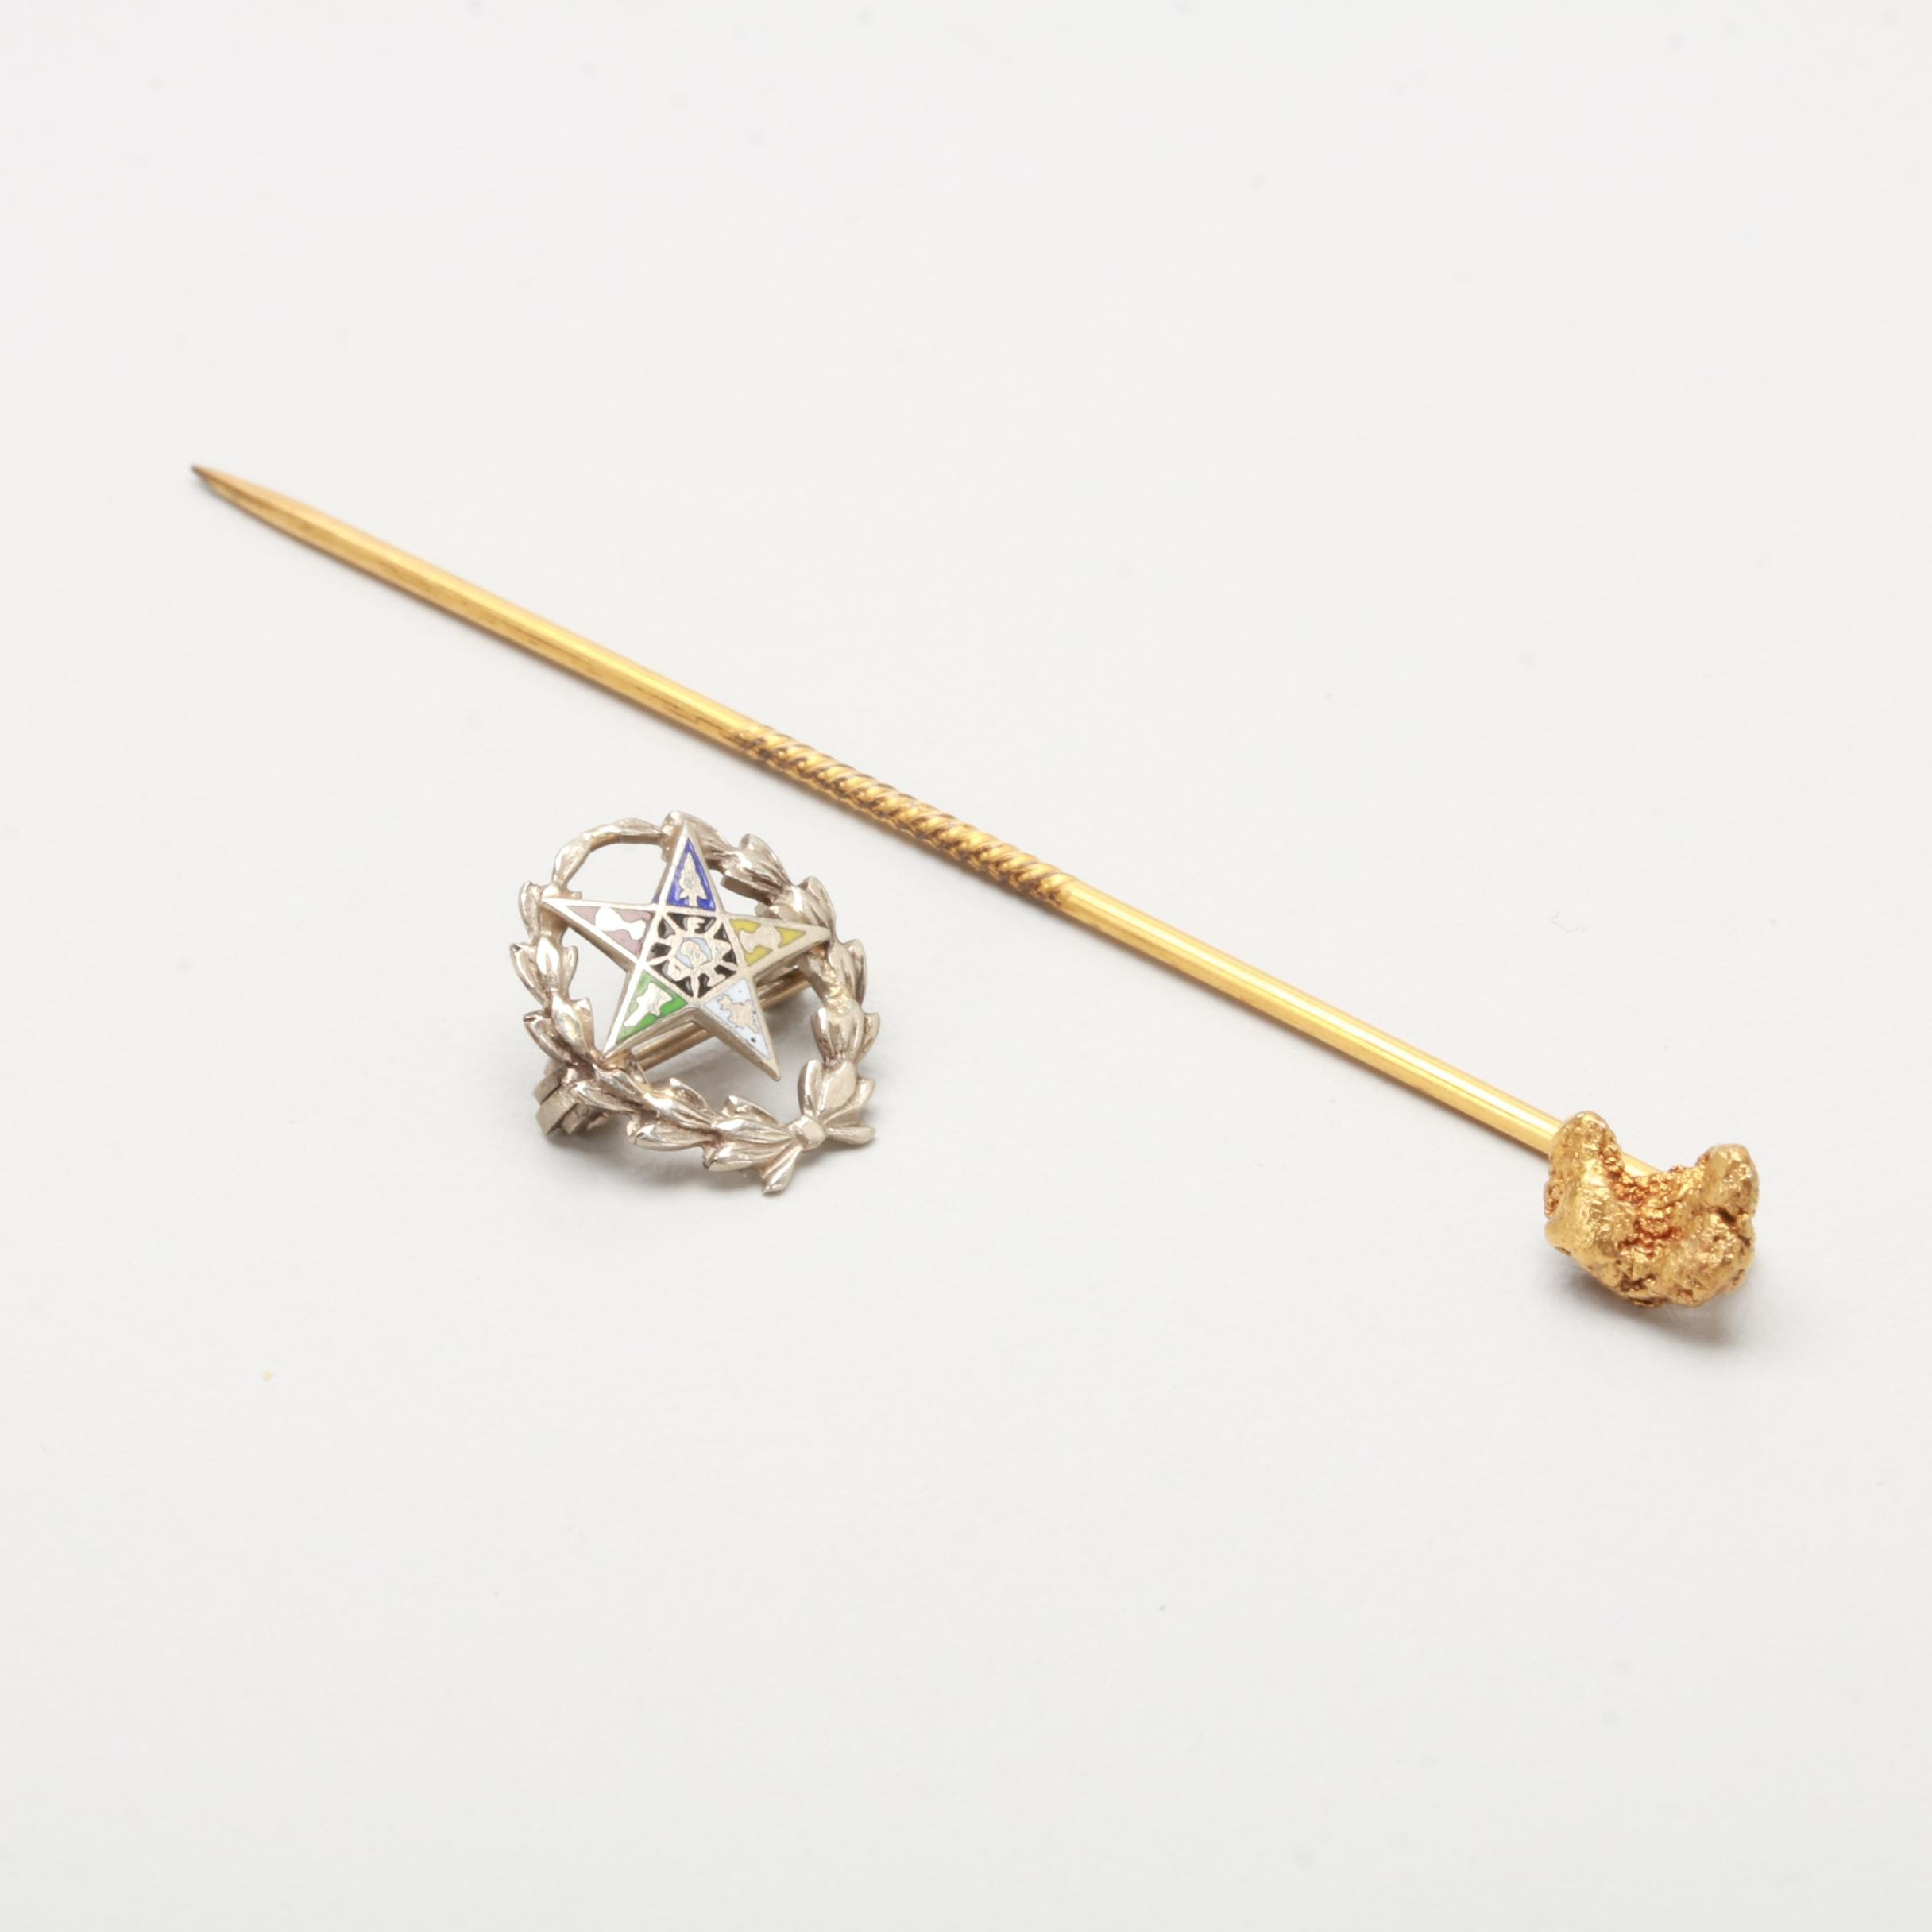 18K Yellow Gold Nugget Stick Pin and 10K White Gold Eastern Star Enamel Pin